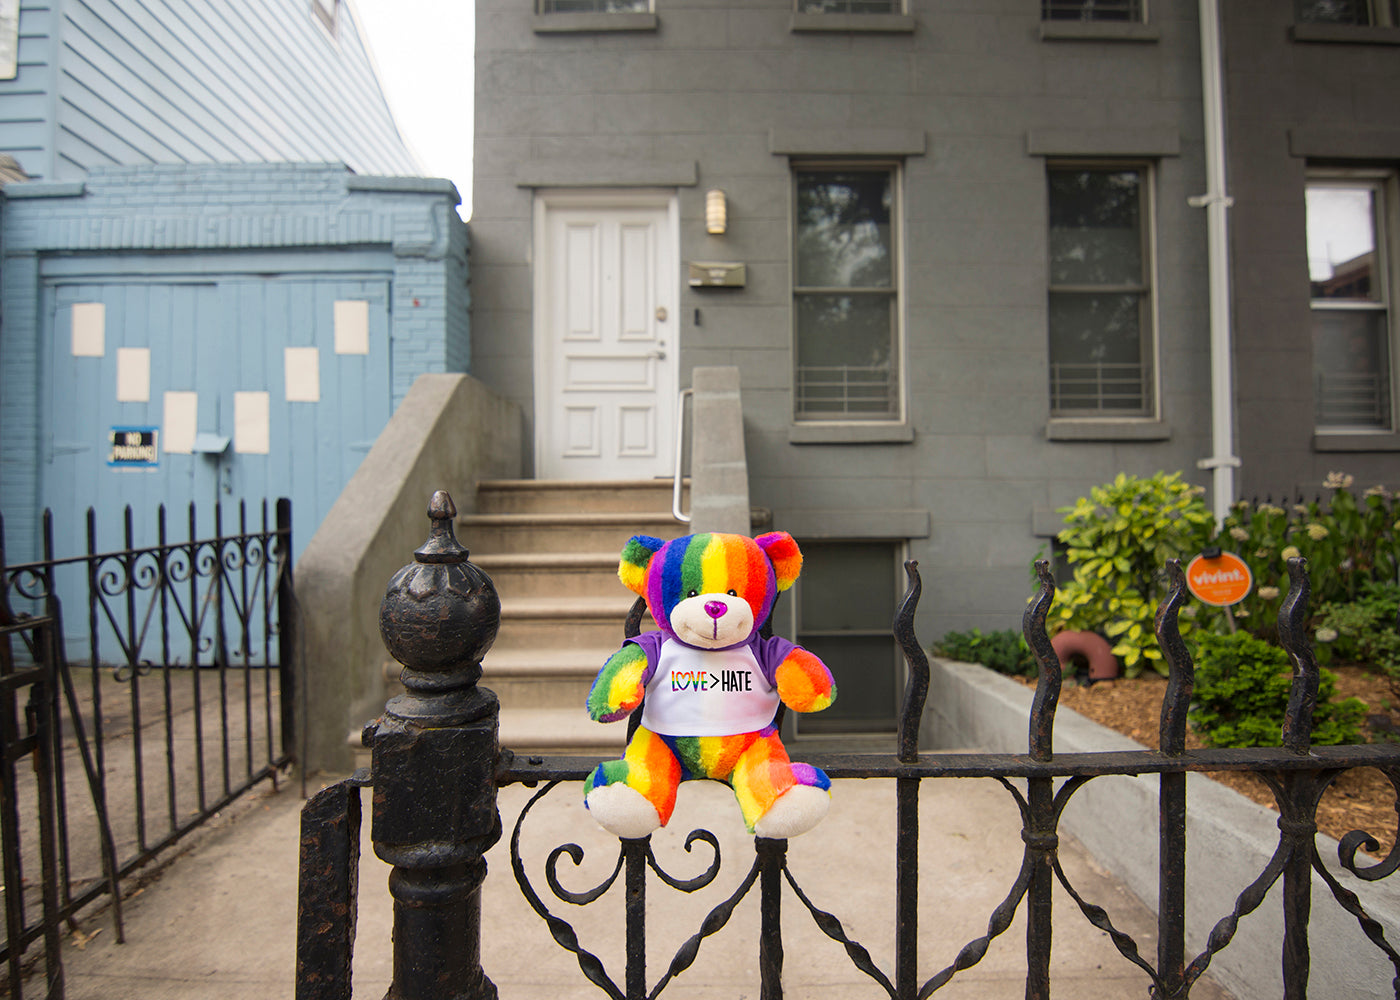 Bear Buggy®'s Totally Pride Teddy bear photographed in front of Brooklyn's Transy House for Pride, the home of trans activisit Sylvia Rivera